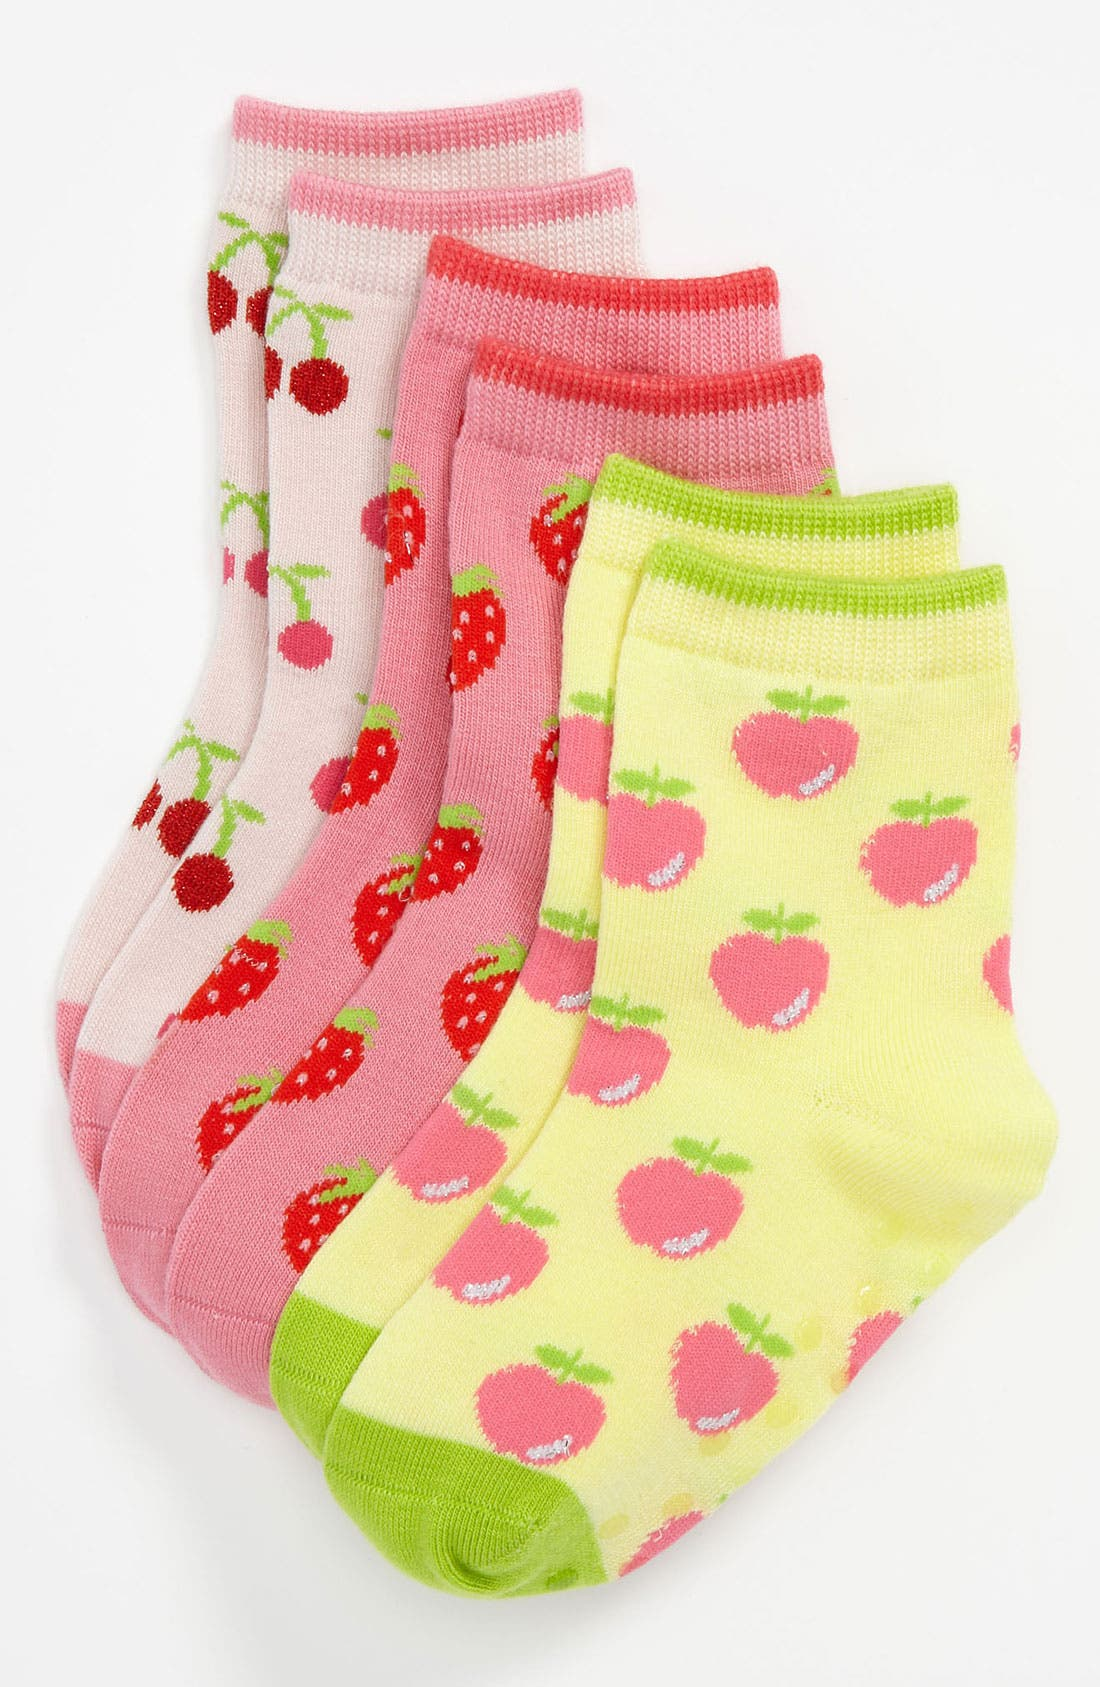 Main Image - Nordstrom 'Bright Bites' Crew Socks (3-Pack) (Girls)